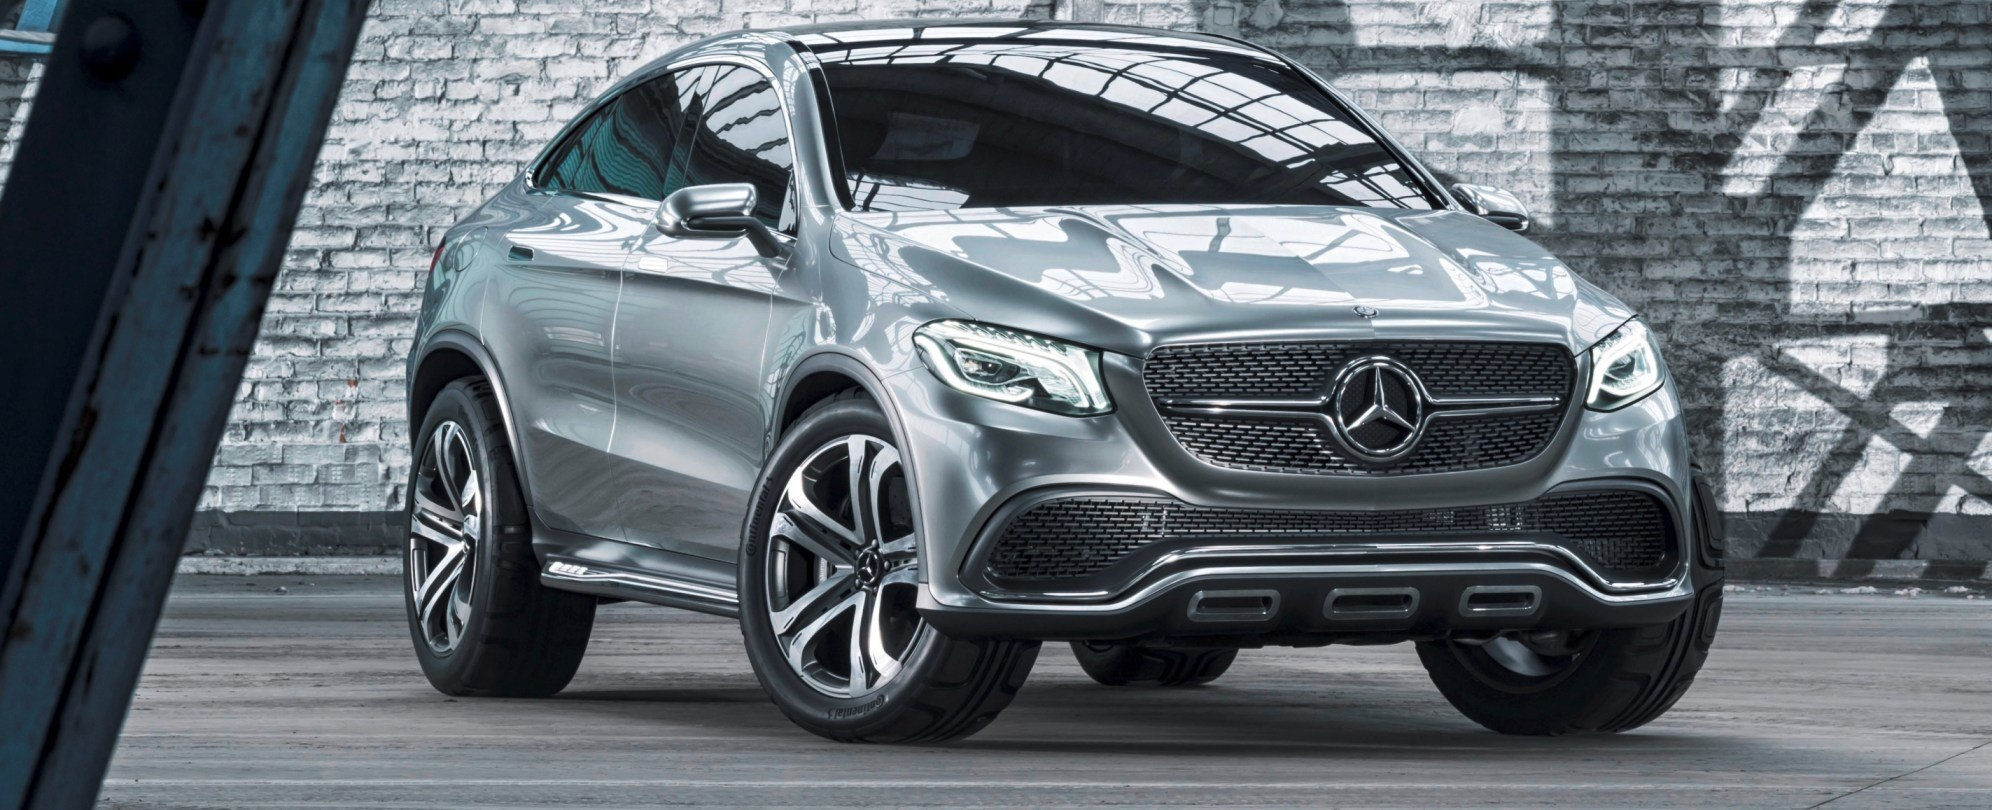 wide flush fitted 22 inch wheels with tyres in size 30545 r 22 make the vehicle sit squarely on the road and leave no doubt about the passion of the - Mercedes Benz Concept Coup Suv